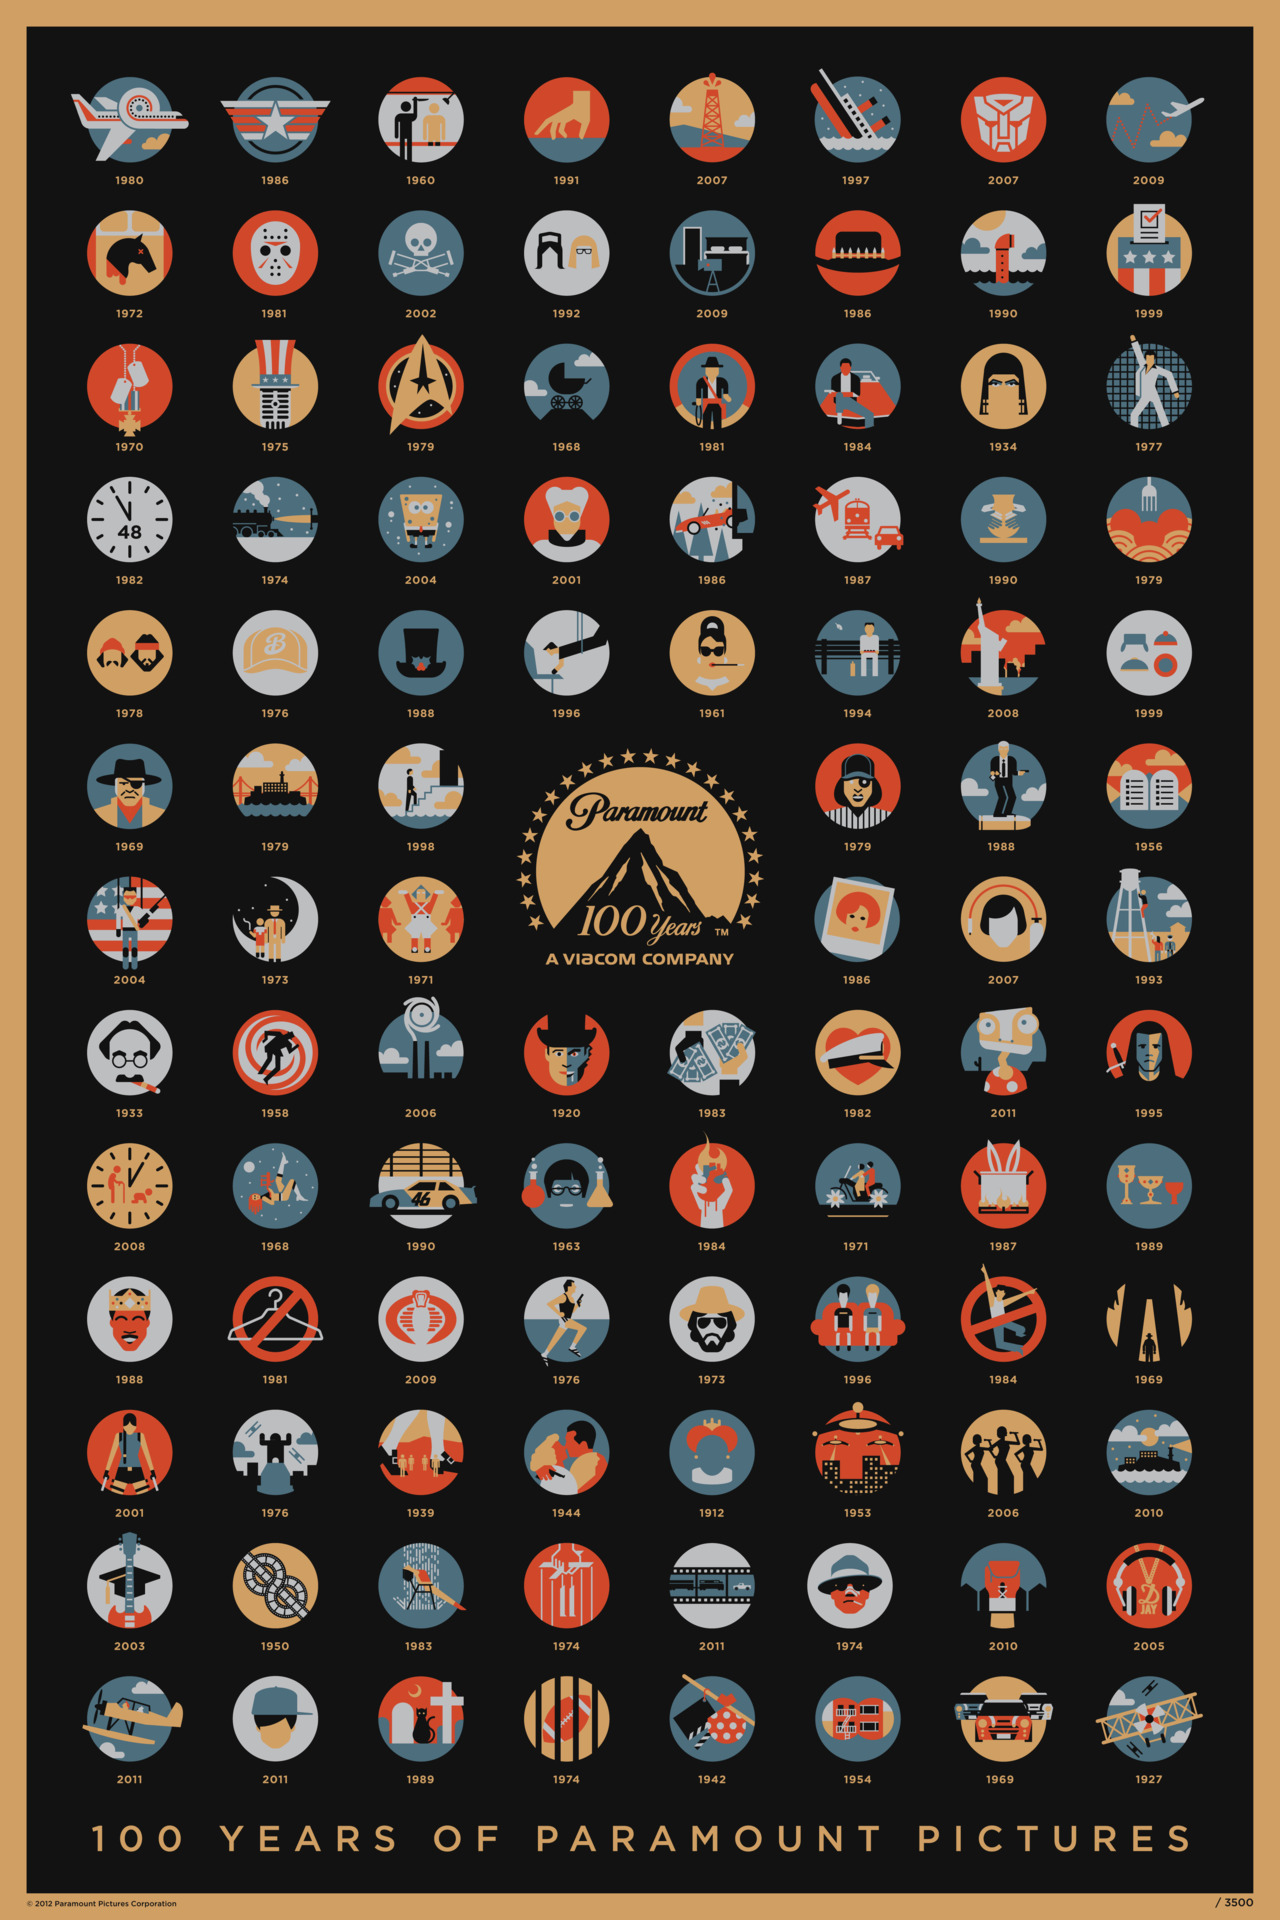 Paramount Pictures 100th Anniversary poster - Gallery 1988